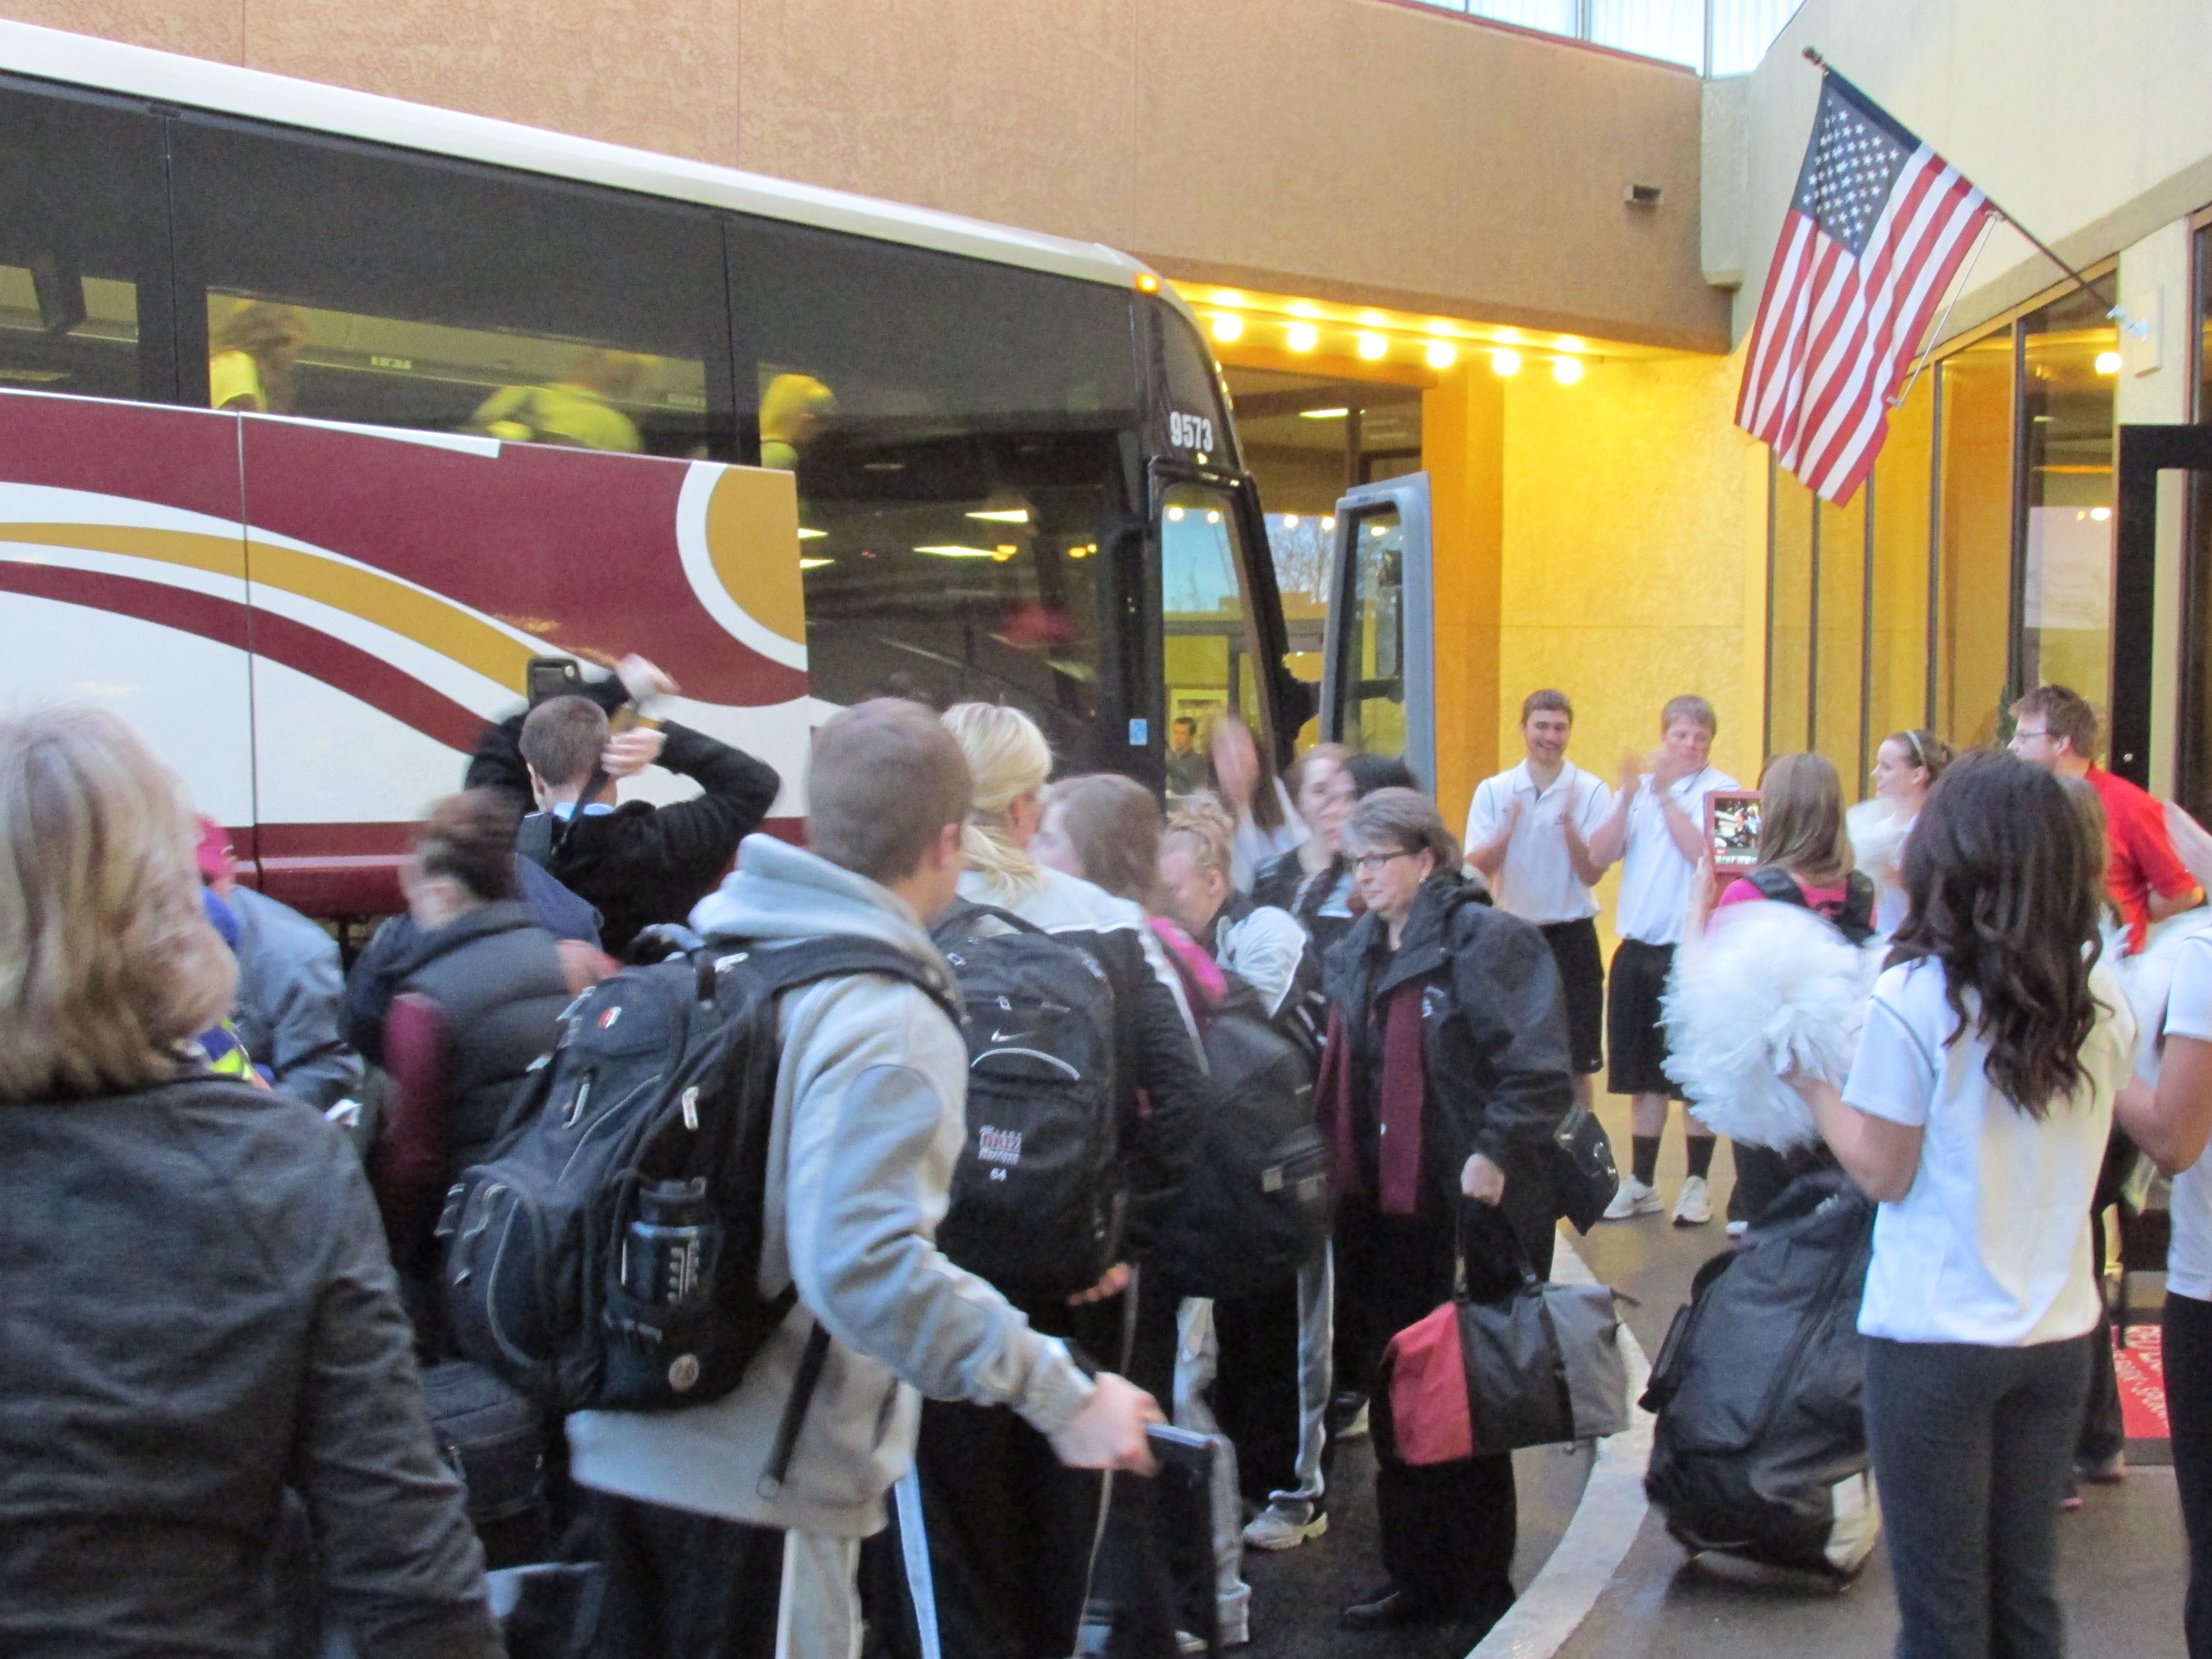 The Lady Griz getting off the bus and getting welcomed by the Cheer Squad.